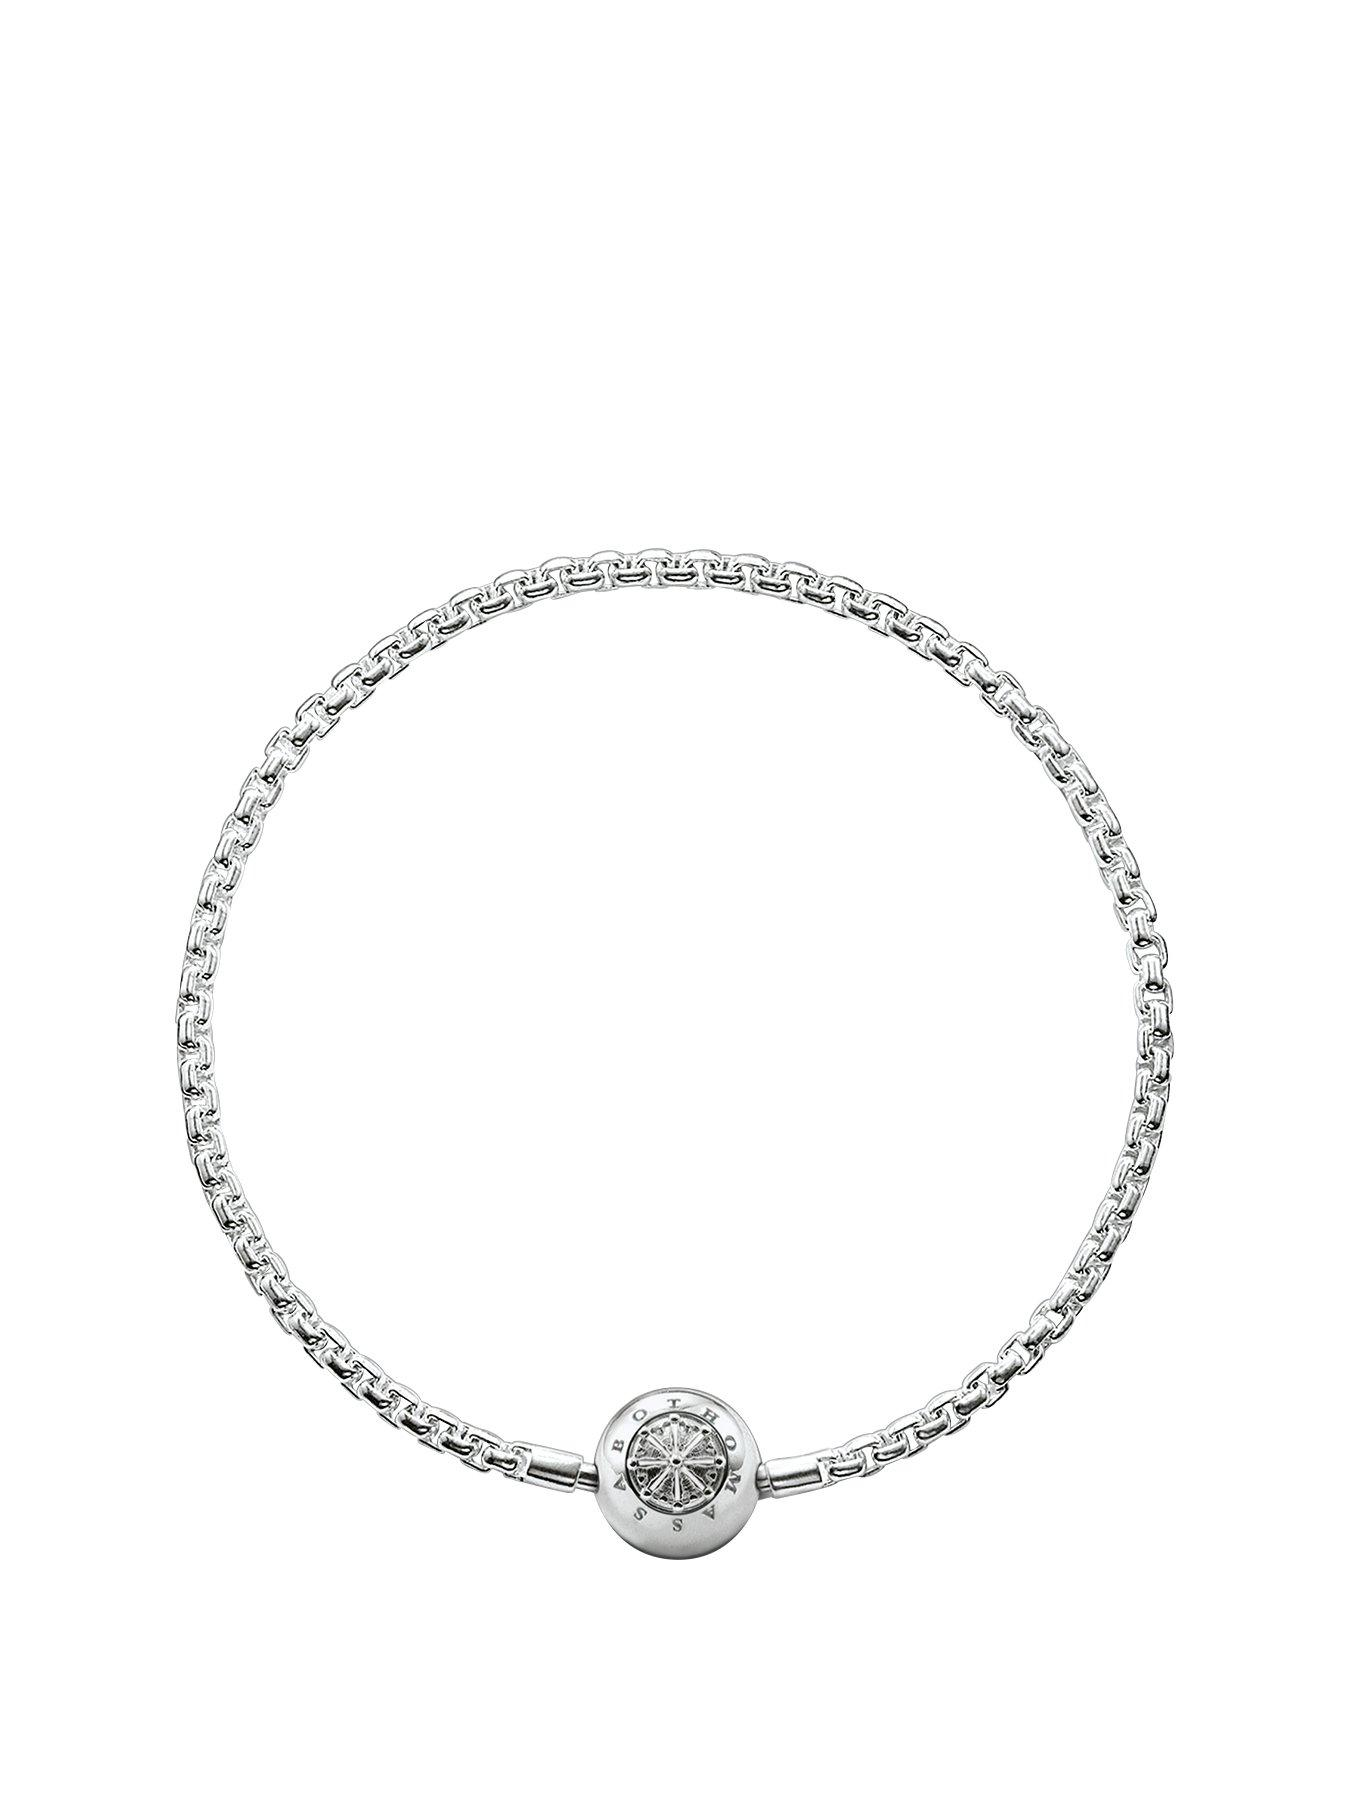 Alex And Ani Womens French Royalty Rafaelian Silver Charm Bracelet 1681955819 in addition Park Lane Clip On Crystal Earrings Cy2076cl in addition Fiorelli Costume Jewellery Bracelet B4252 P2938 also Pandora Charms Liverpool Uk Xl Pandoraoutlet en further Fossil Bracelet Silver 31. on fossil purses on sale